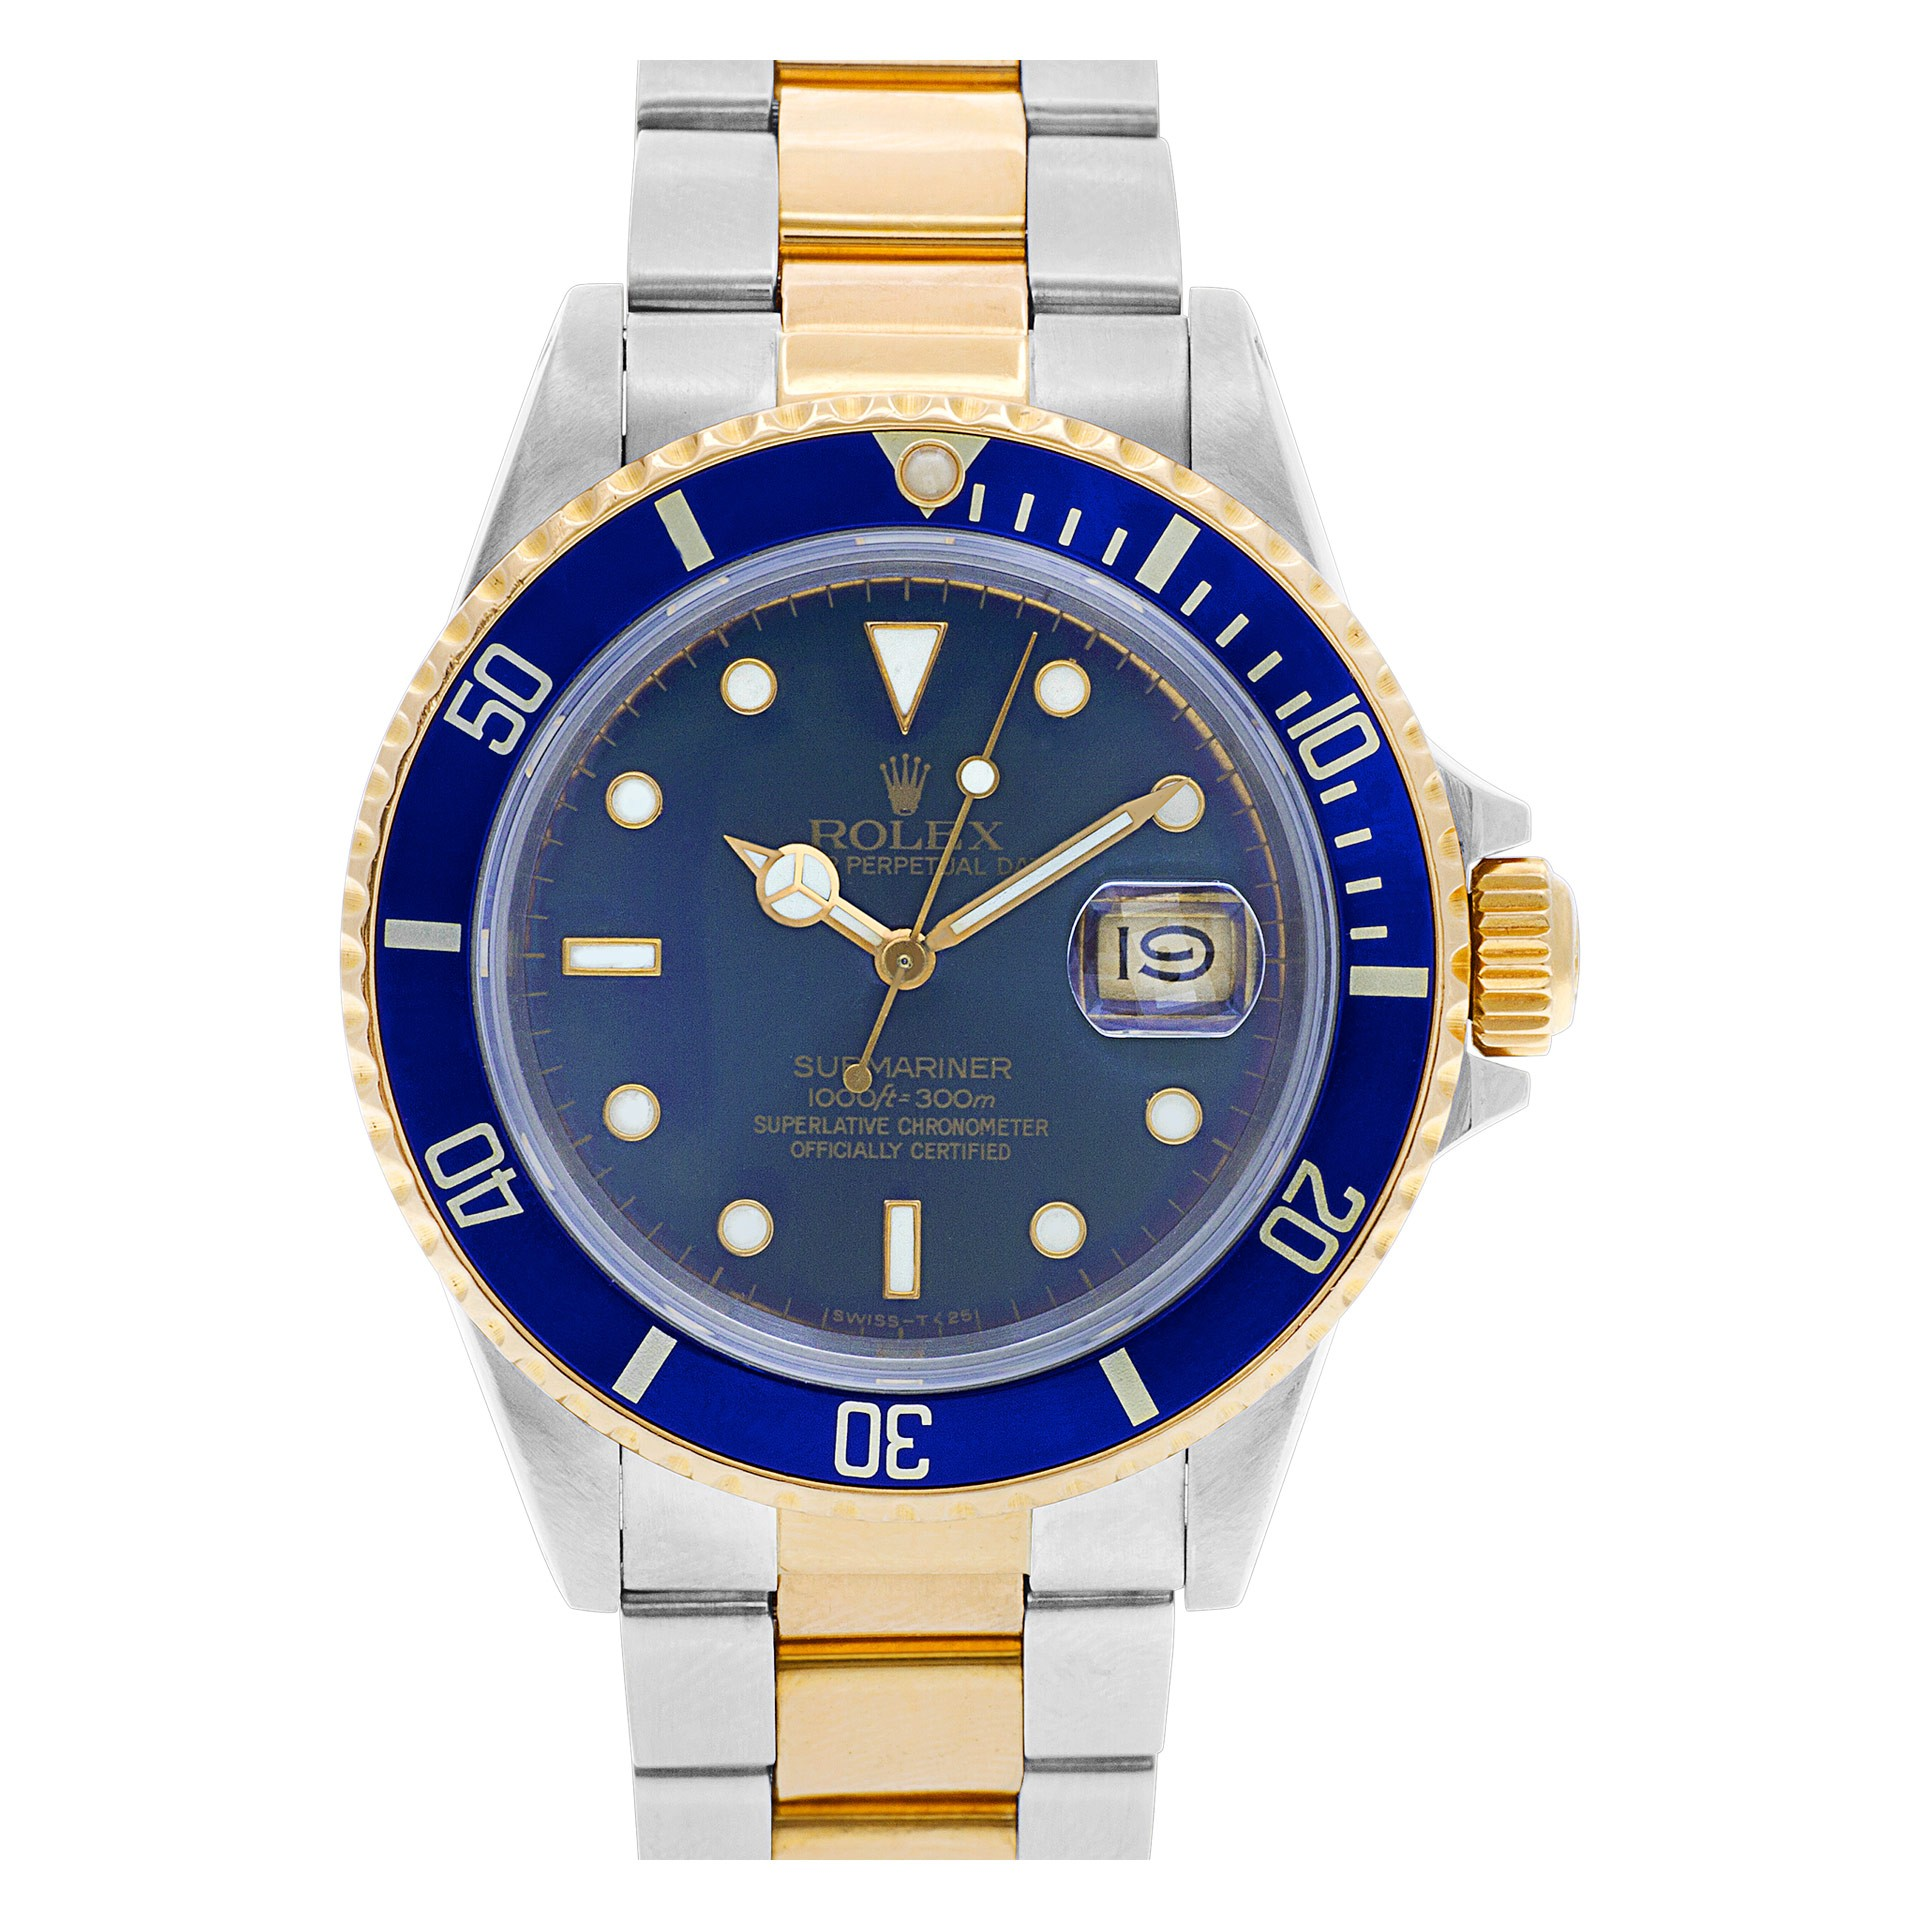 The Submariner ref. 16803 was the first two-tone Submariner